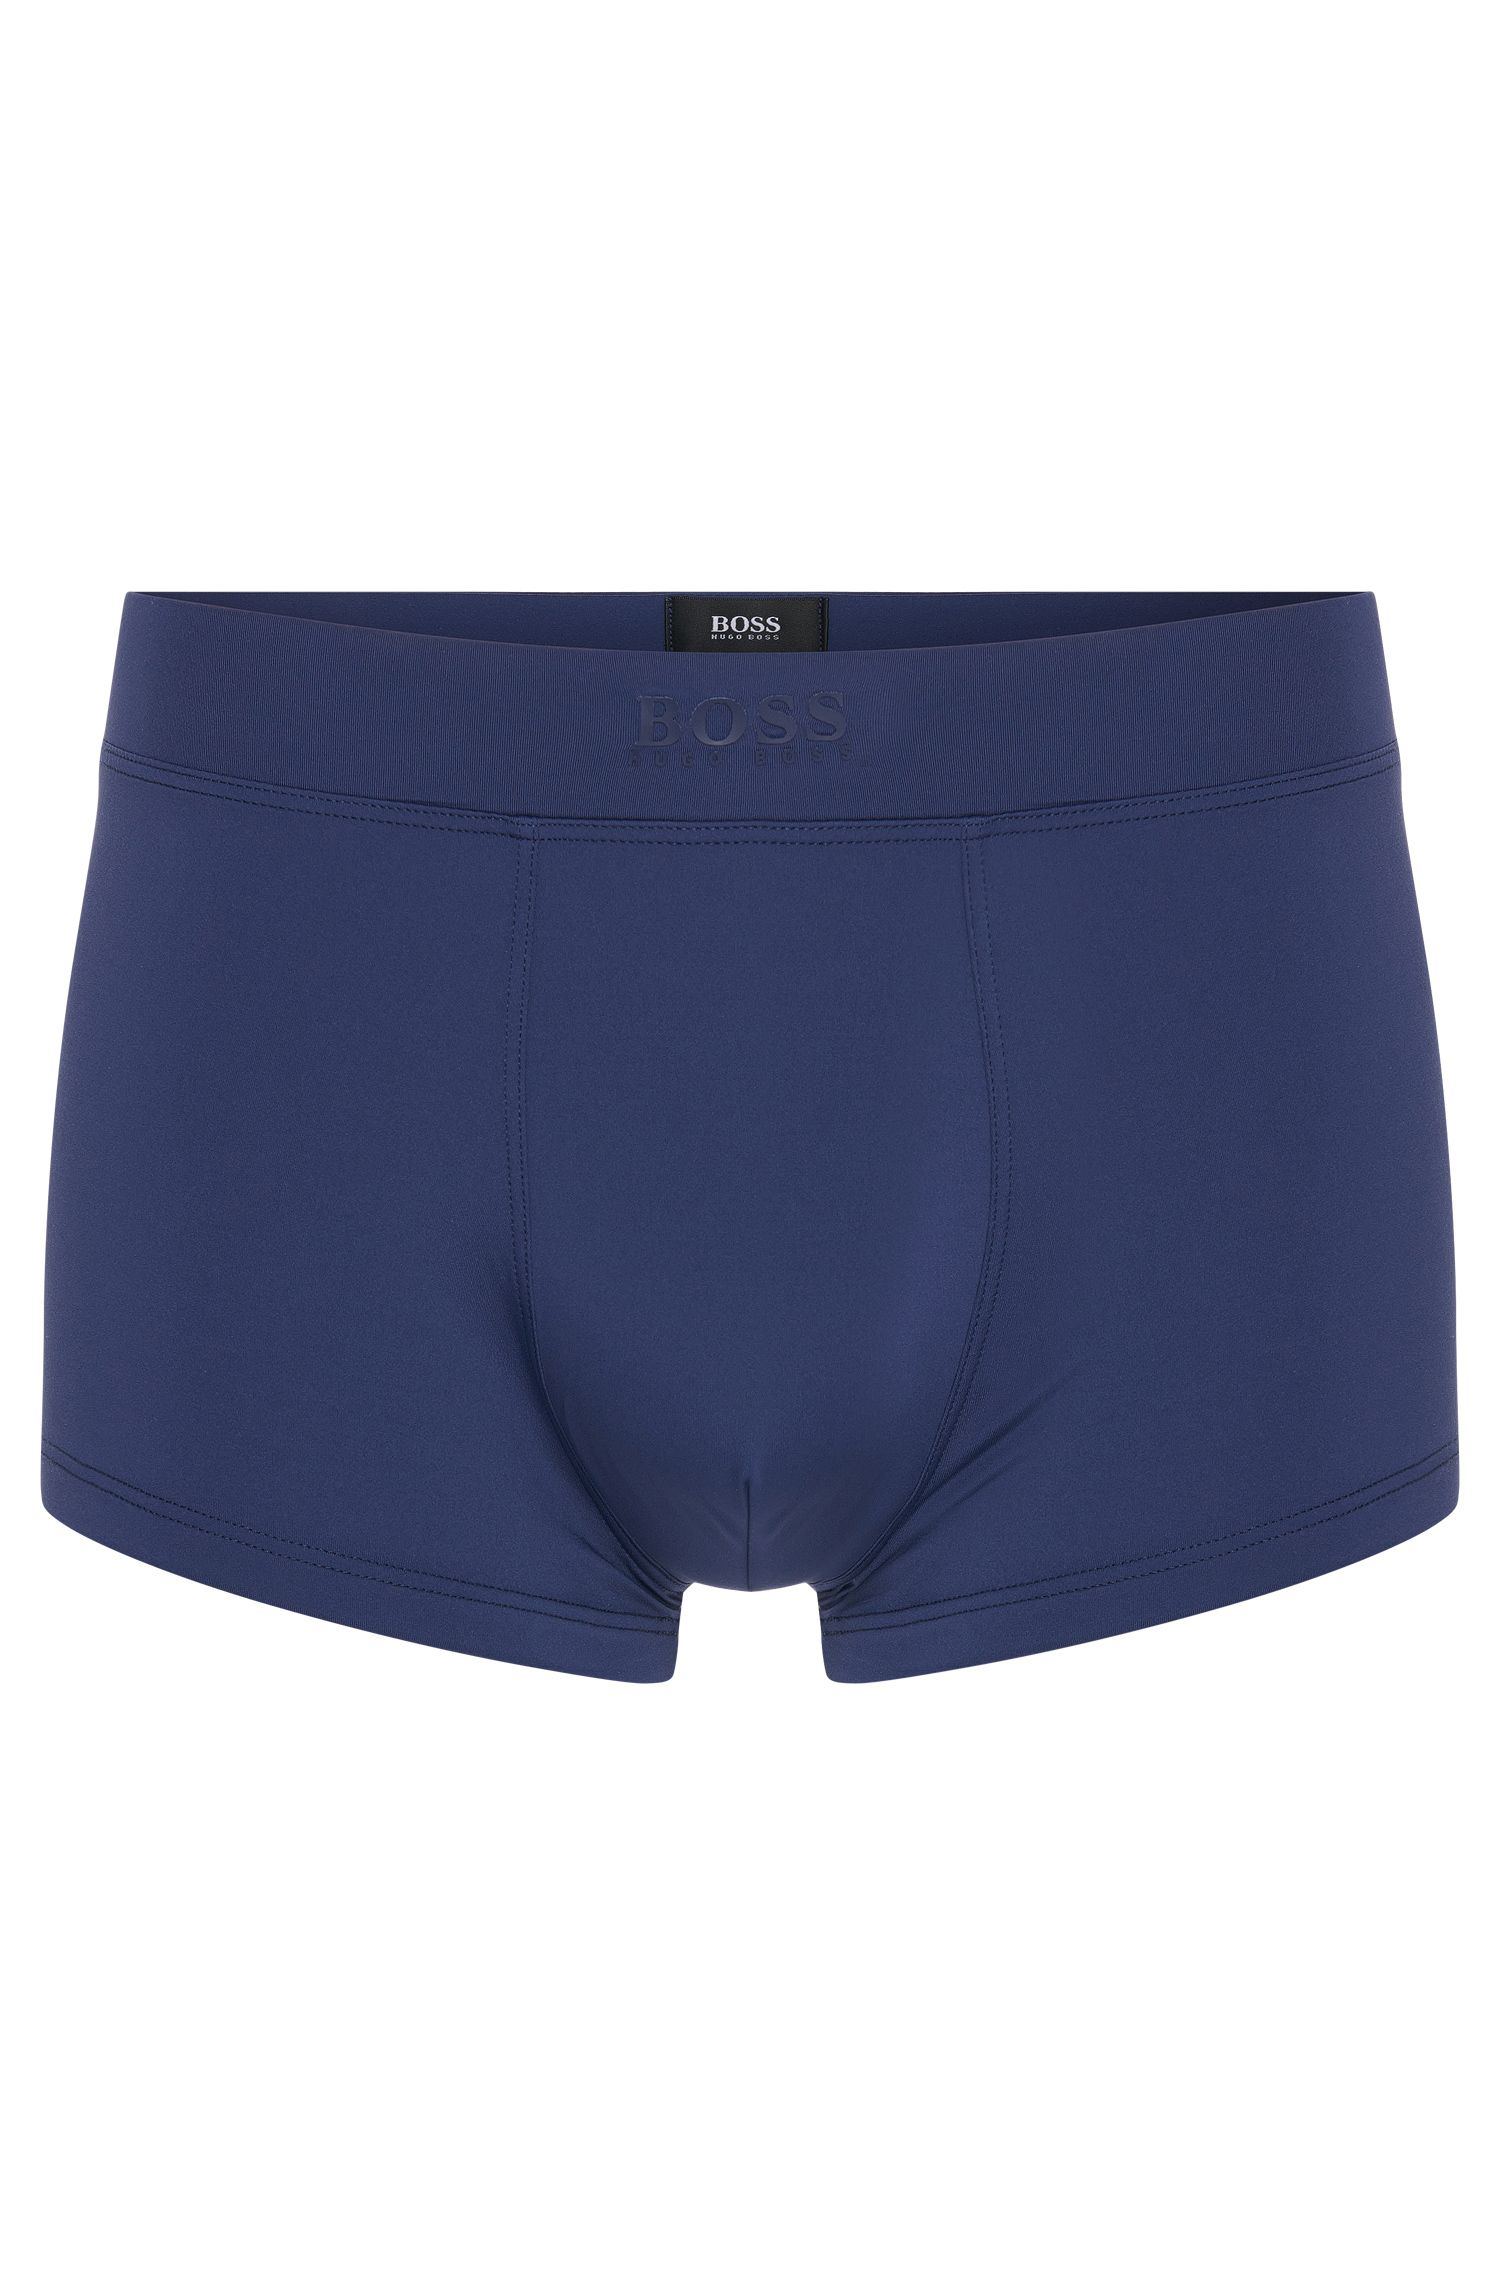 Boxer shorts in microfibre: 'Boxer CW Energy'